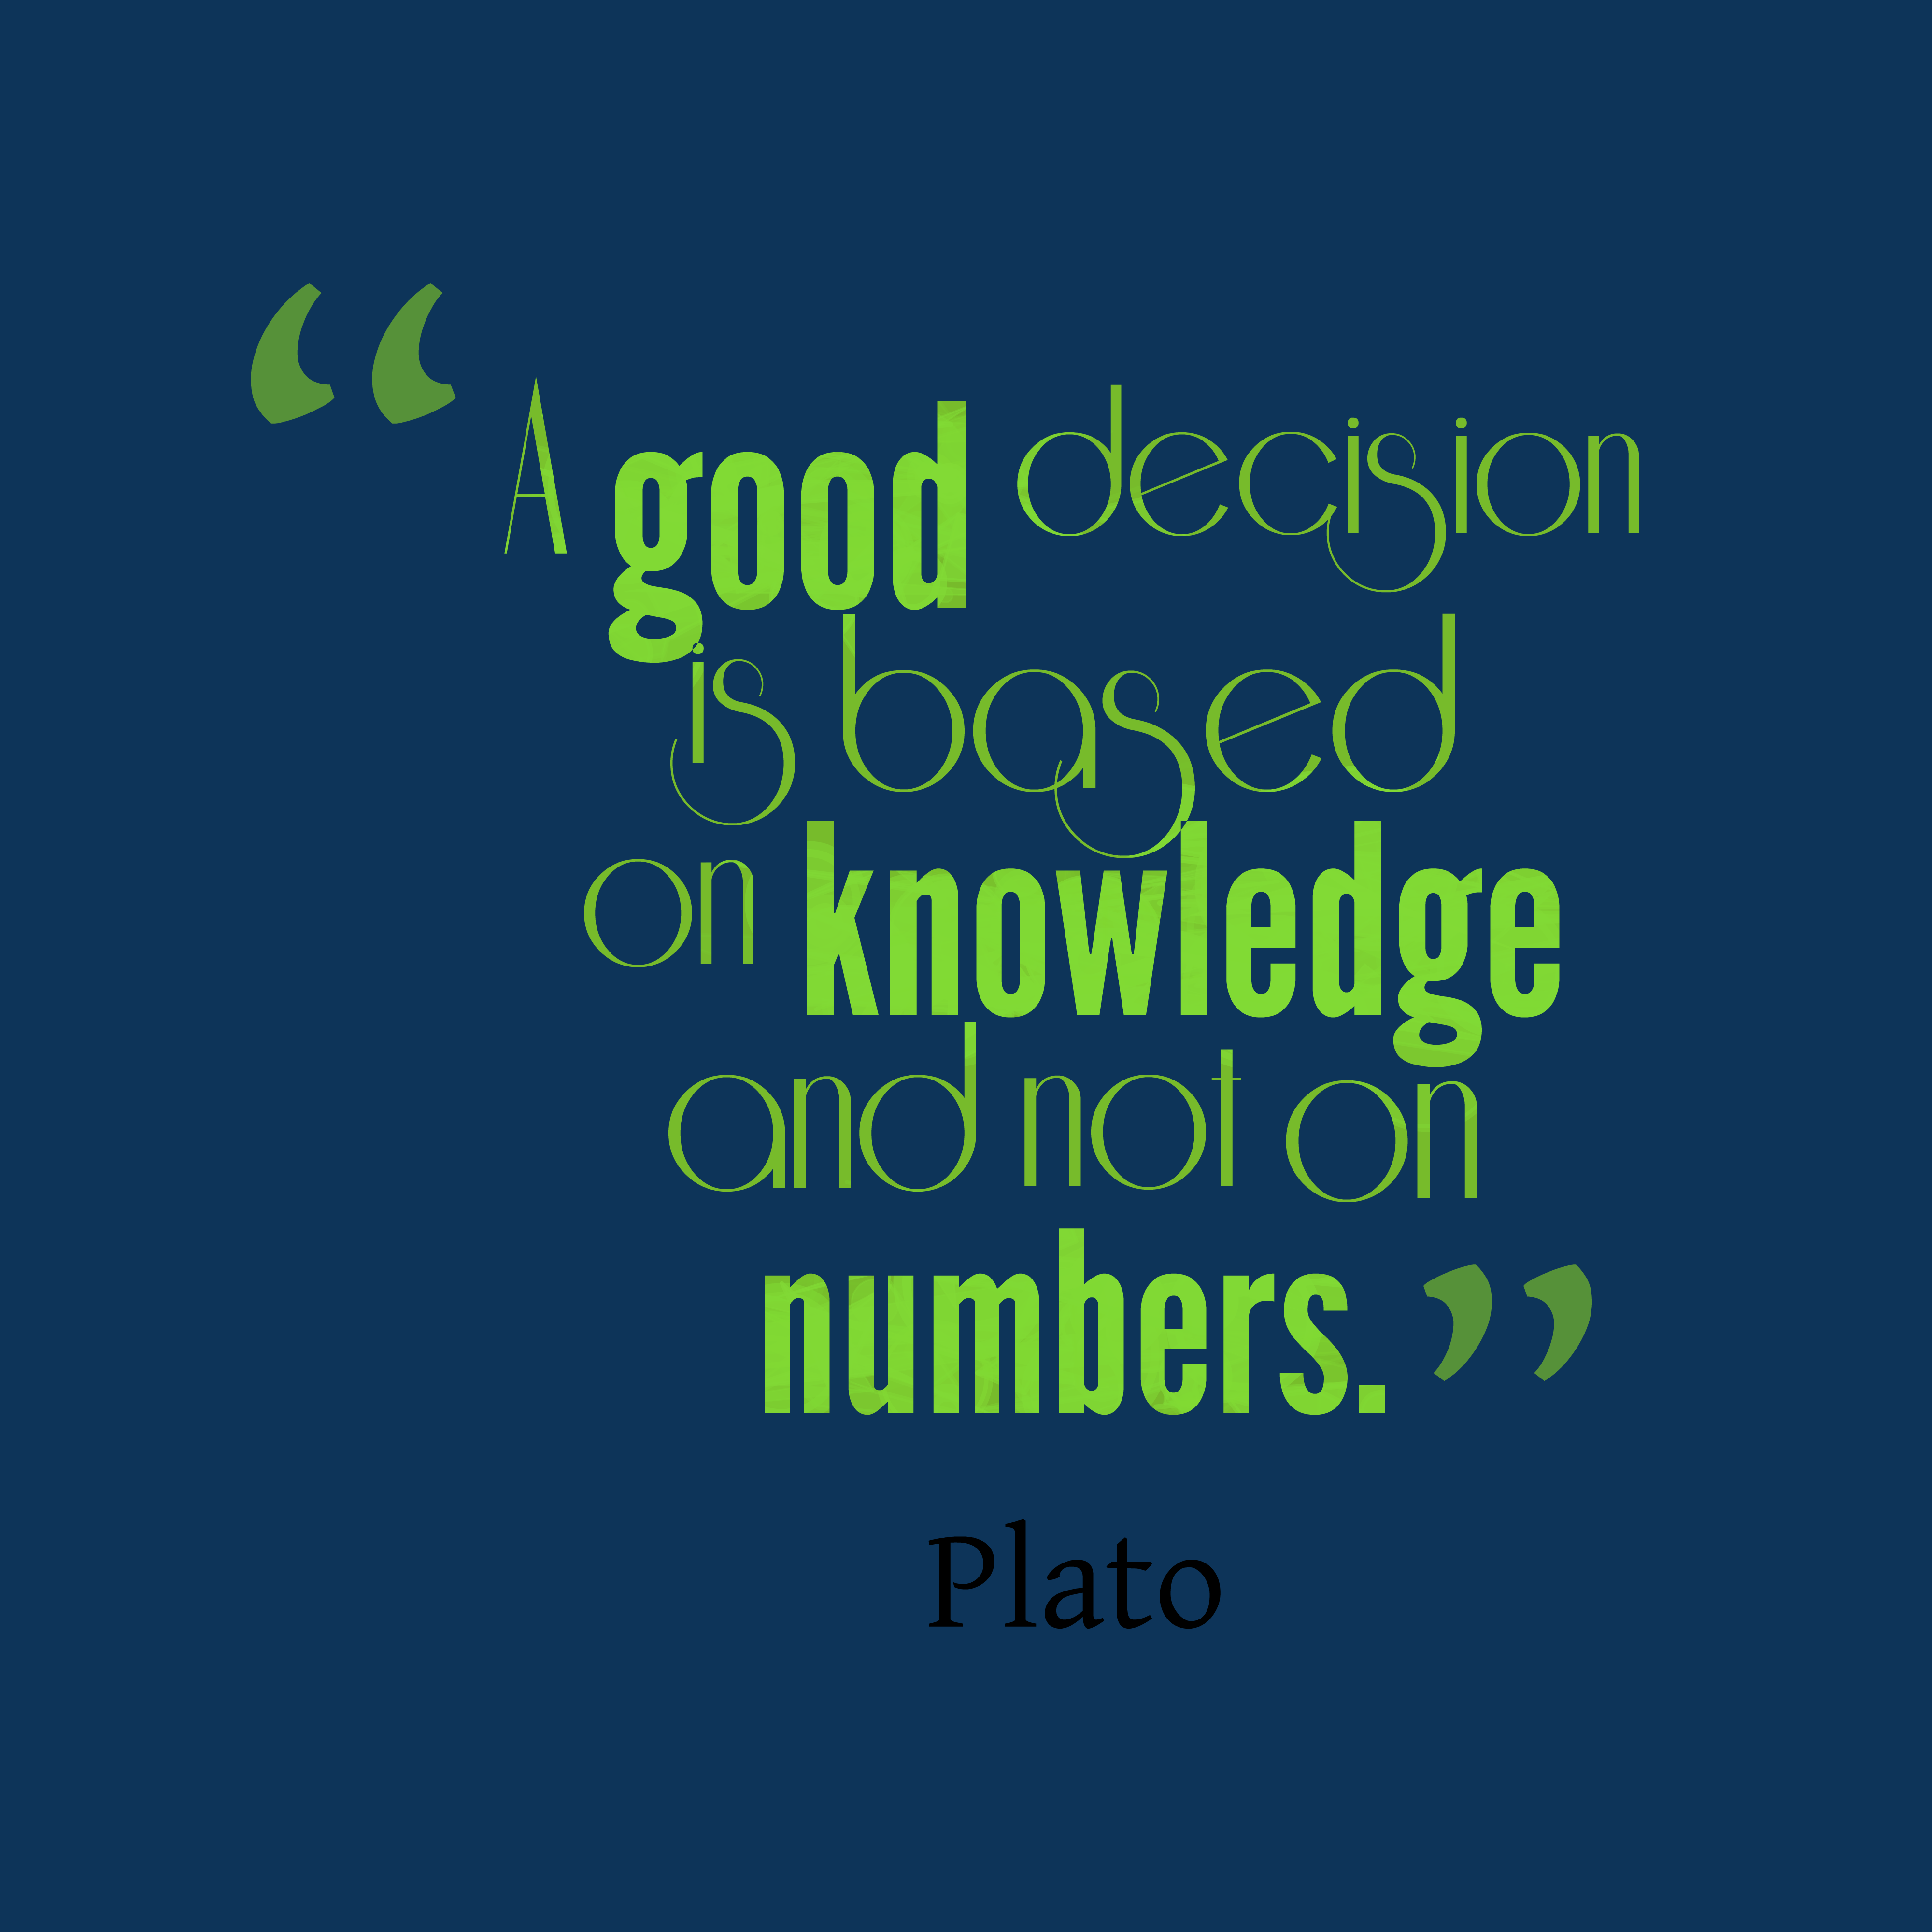 Quotes image of A good decision is based on knowledge and not on numbers.